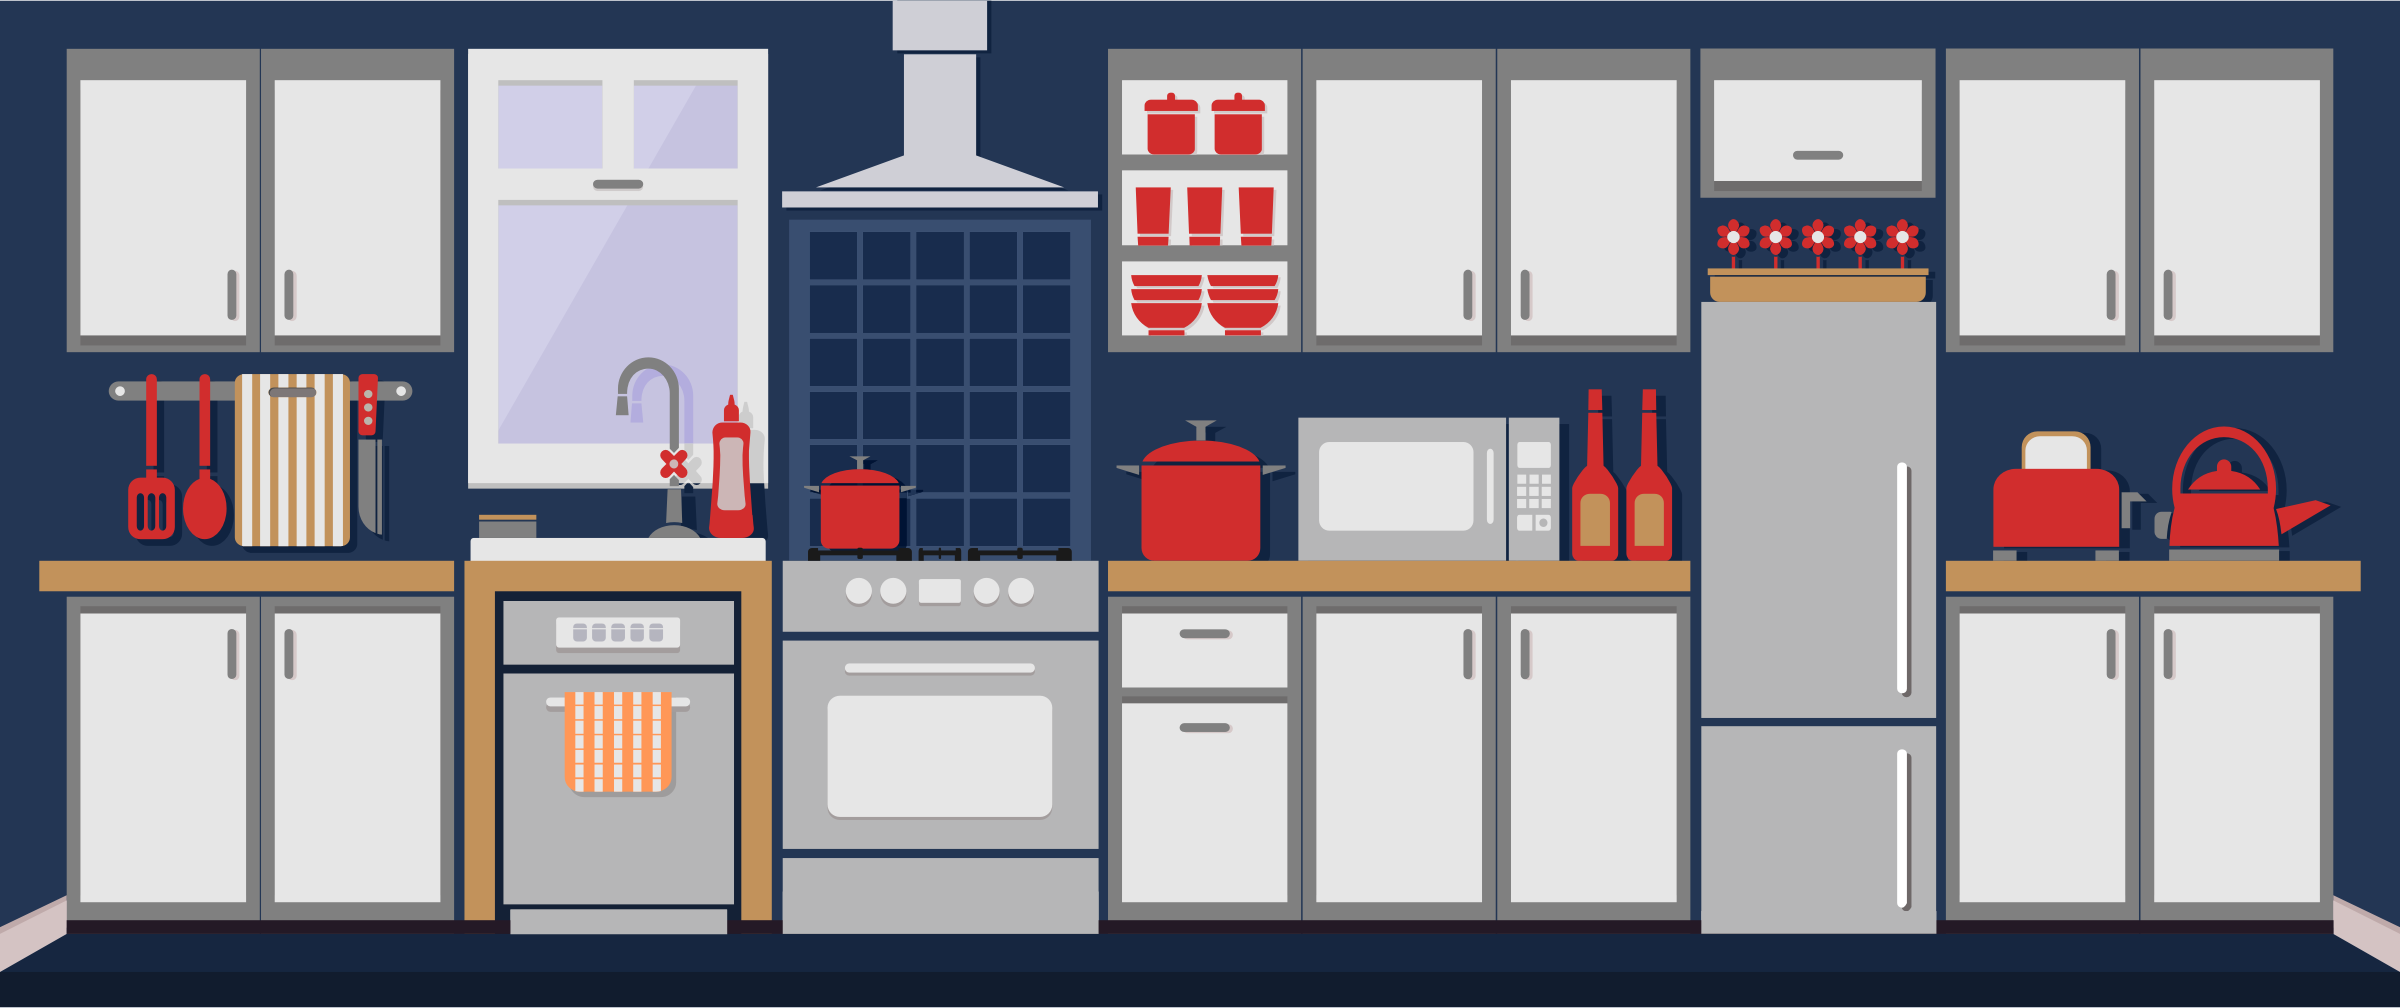 clipart images of kitchens